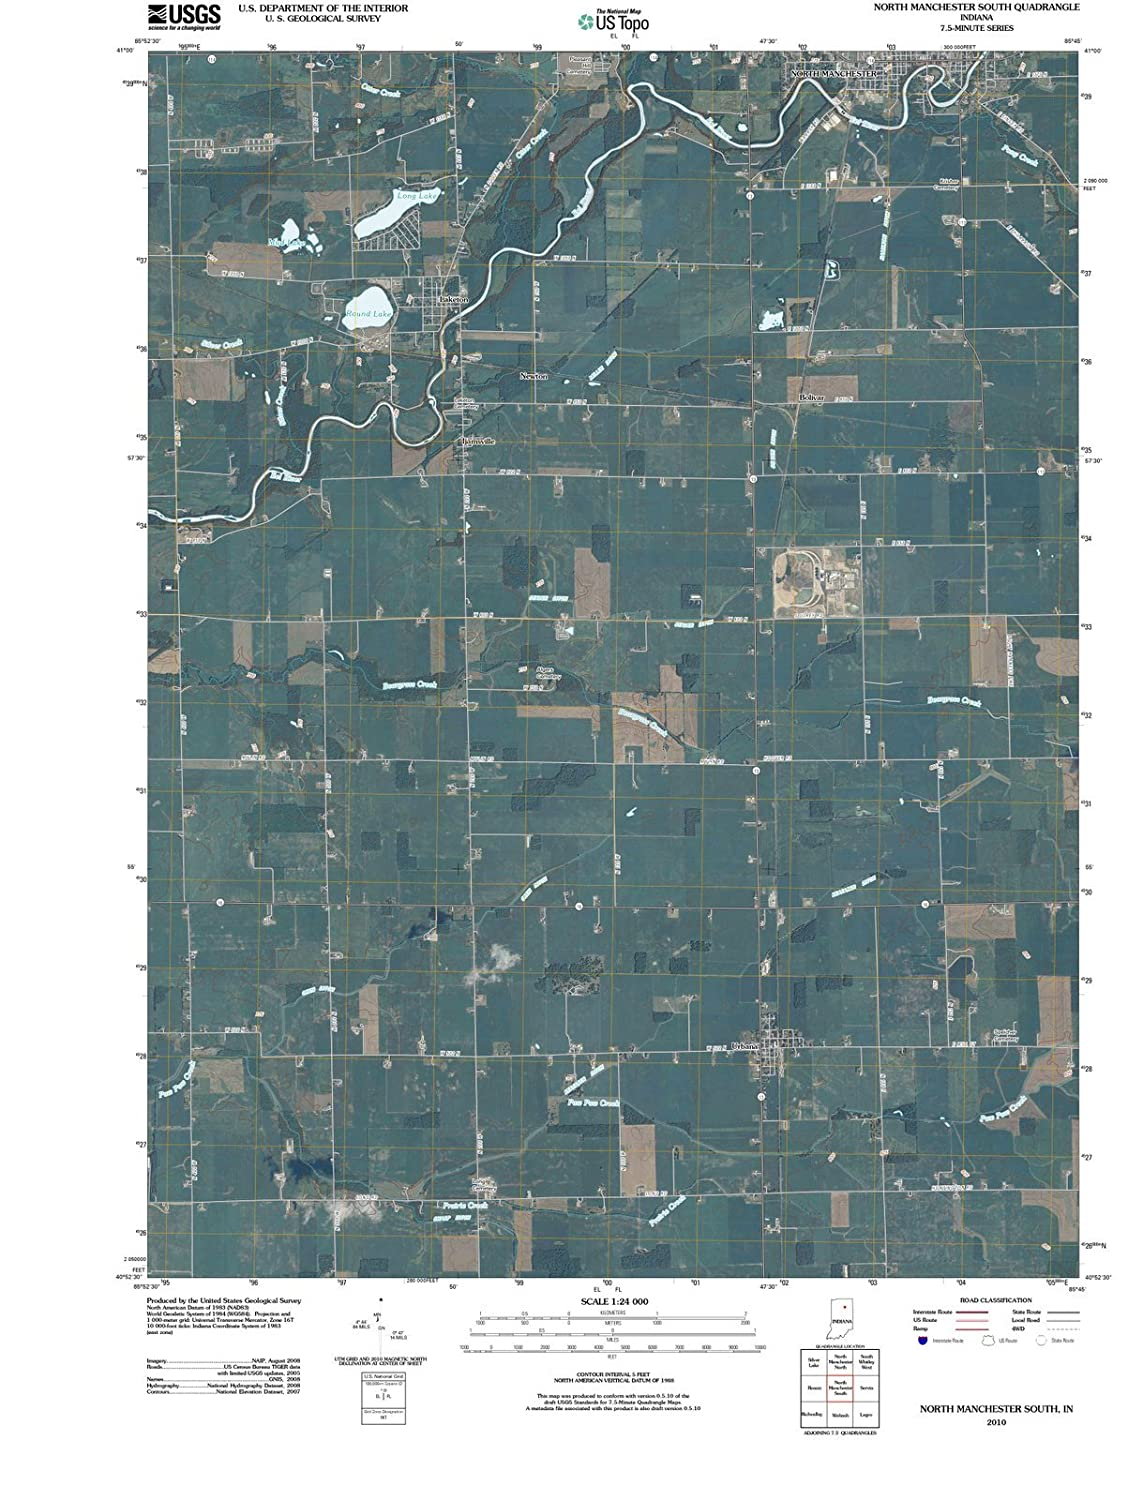 North Manchester Indiana Map.Amazon Com Indiana Maps 2010 North Manchester South In Usgs